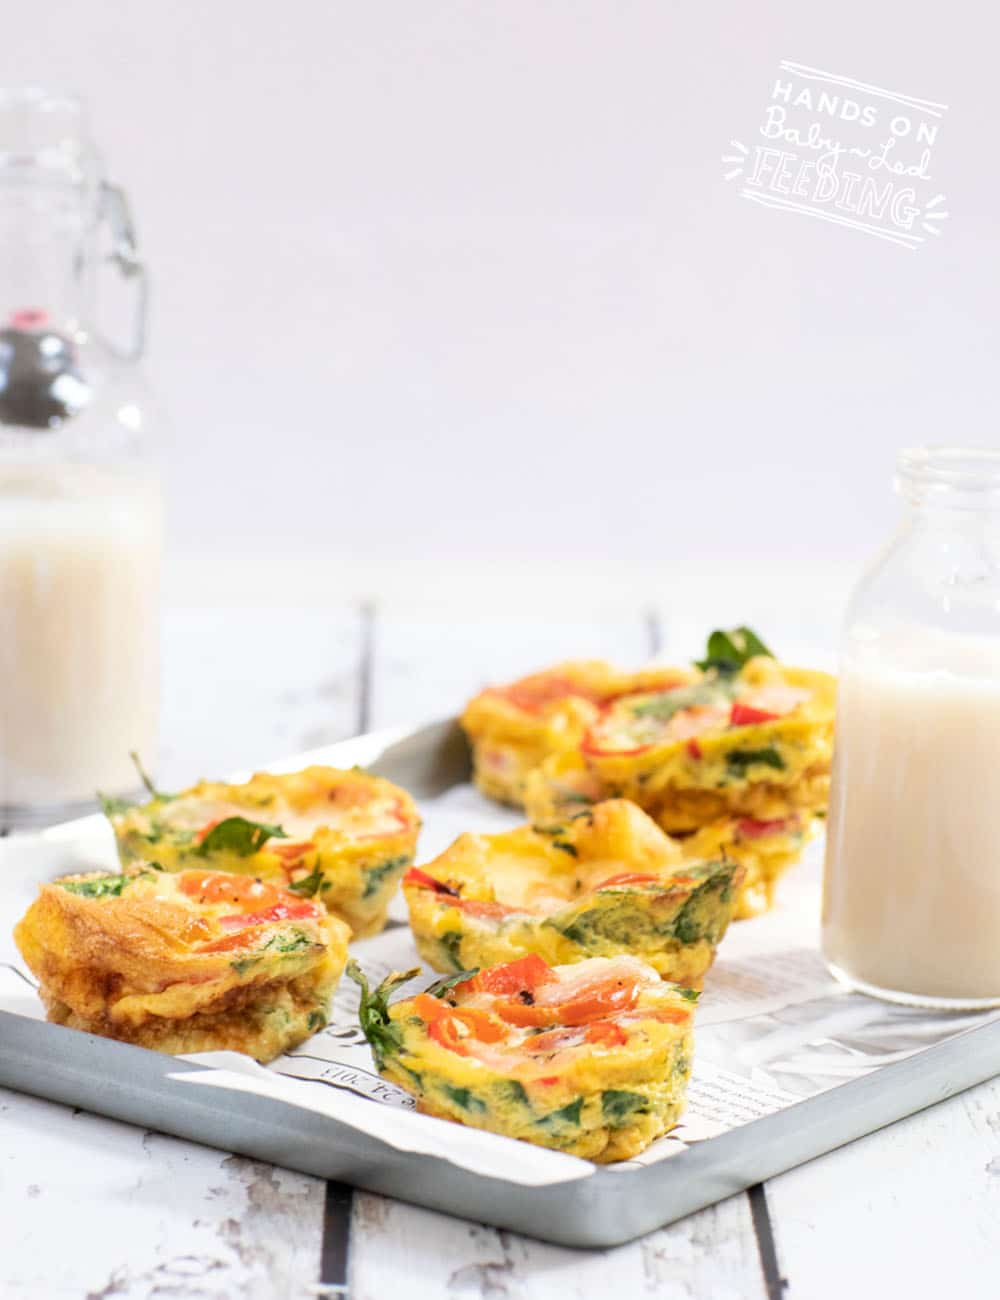 Easy Egg Breakfast Muffins are a healthy breakfast option for baby led weaning. Soft eggs and finely dices tomatoes, bell pepper, and spinach are easy for baby to chew even without teeth. #babyledweaning #babyledfeeding #breakfastrecipe